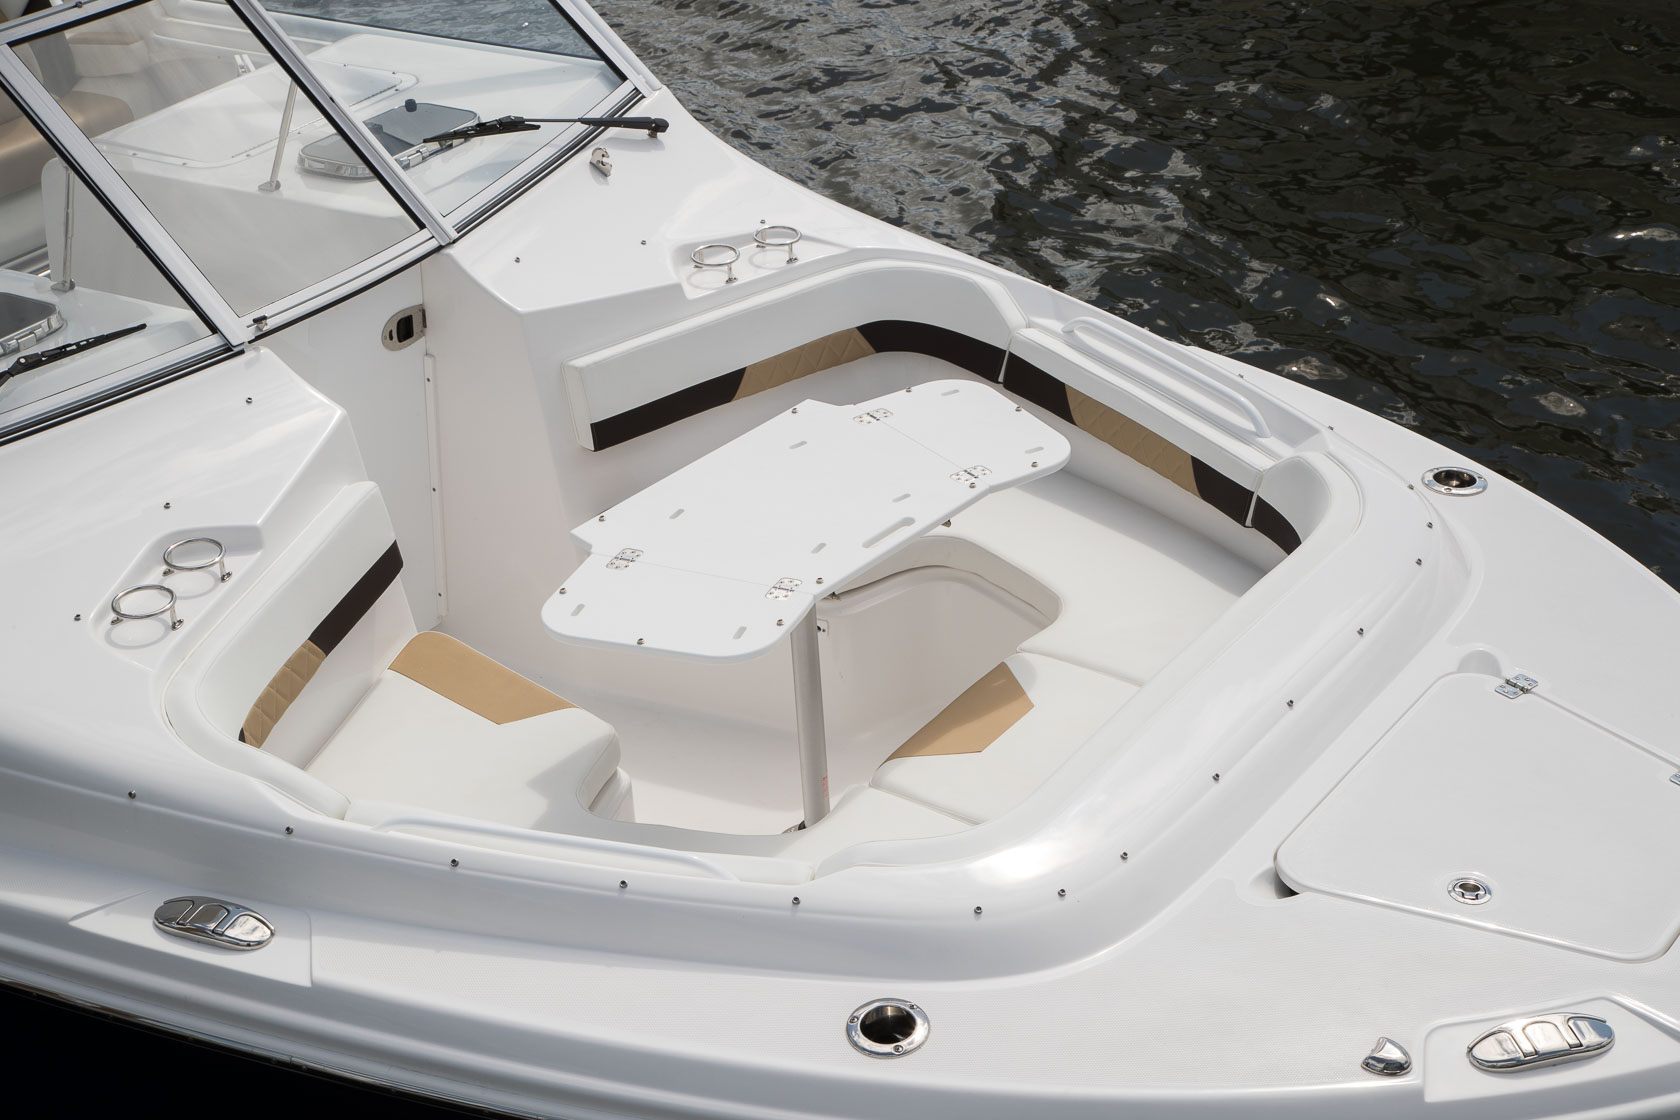 Image 1623: edgewater 280cx bow